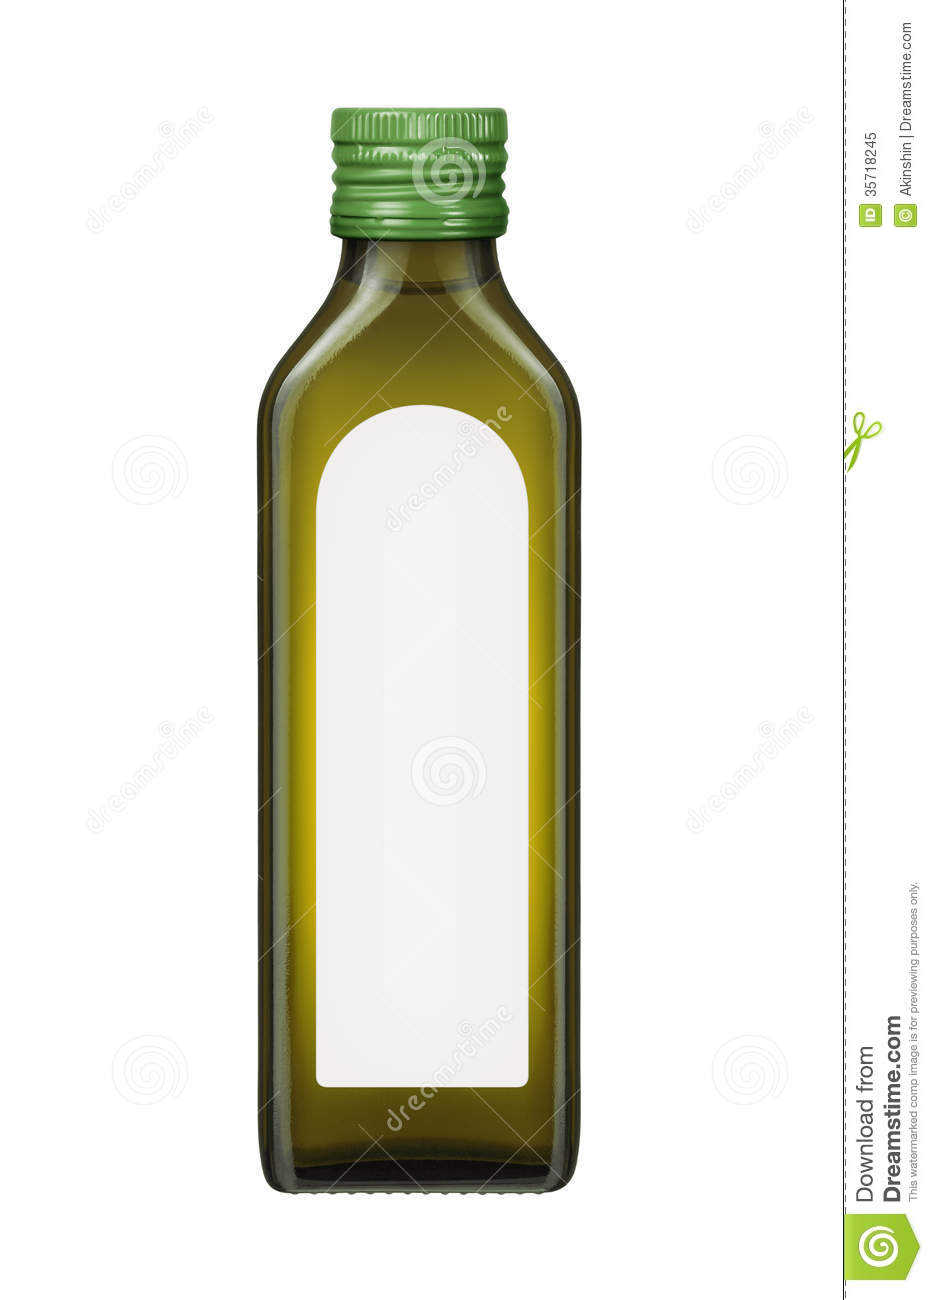 Olive Oil Bottle With Blank Label Royalty Free Stock Photo   Image